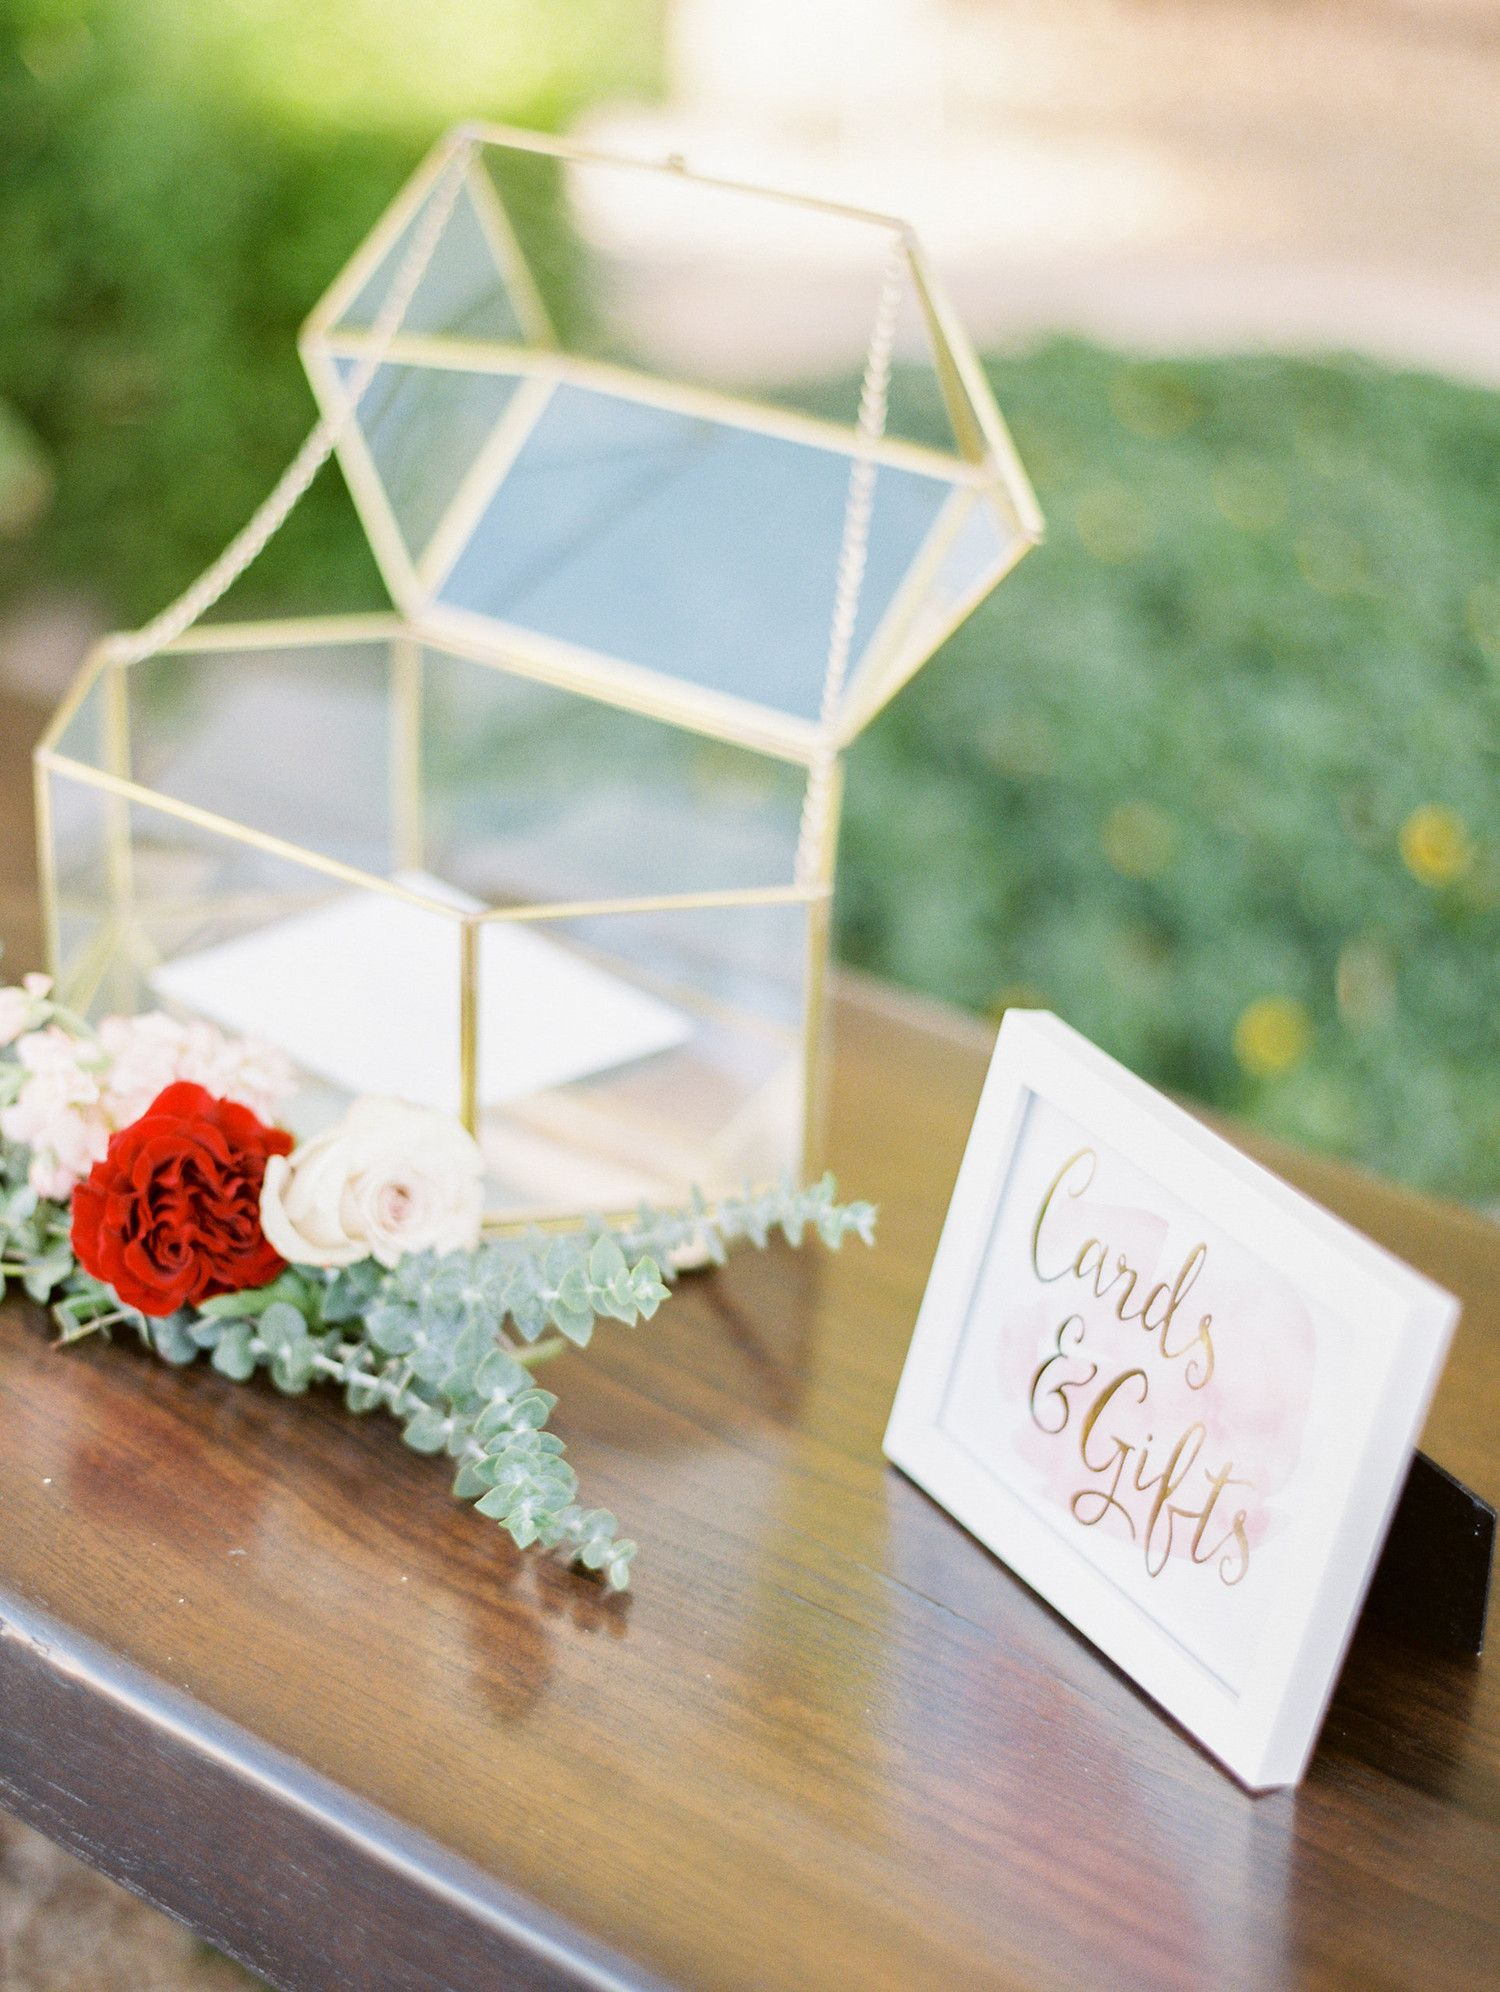 21 Ways To Set Up A Card Or Gift Table At Your Wedding Gift Table Wedding Card Table Wedding Card Box Wedding